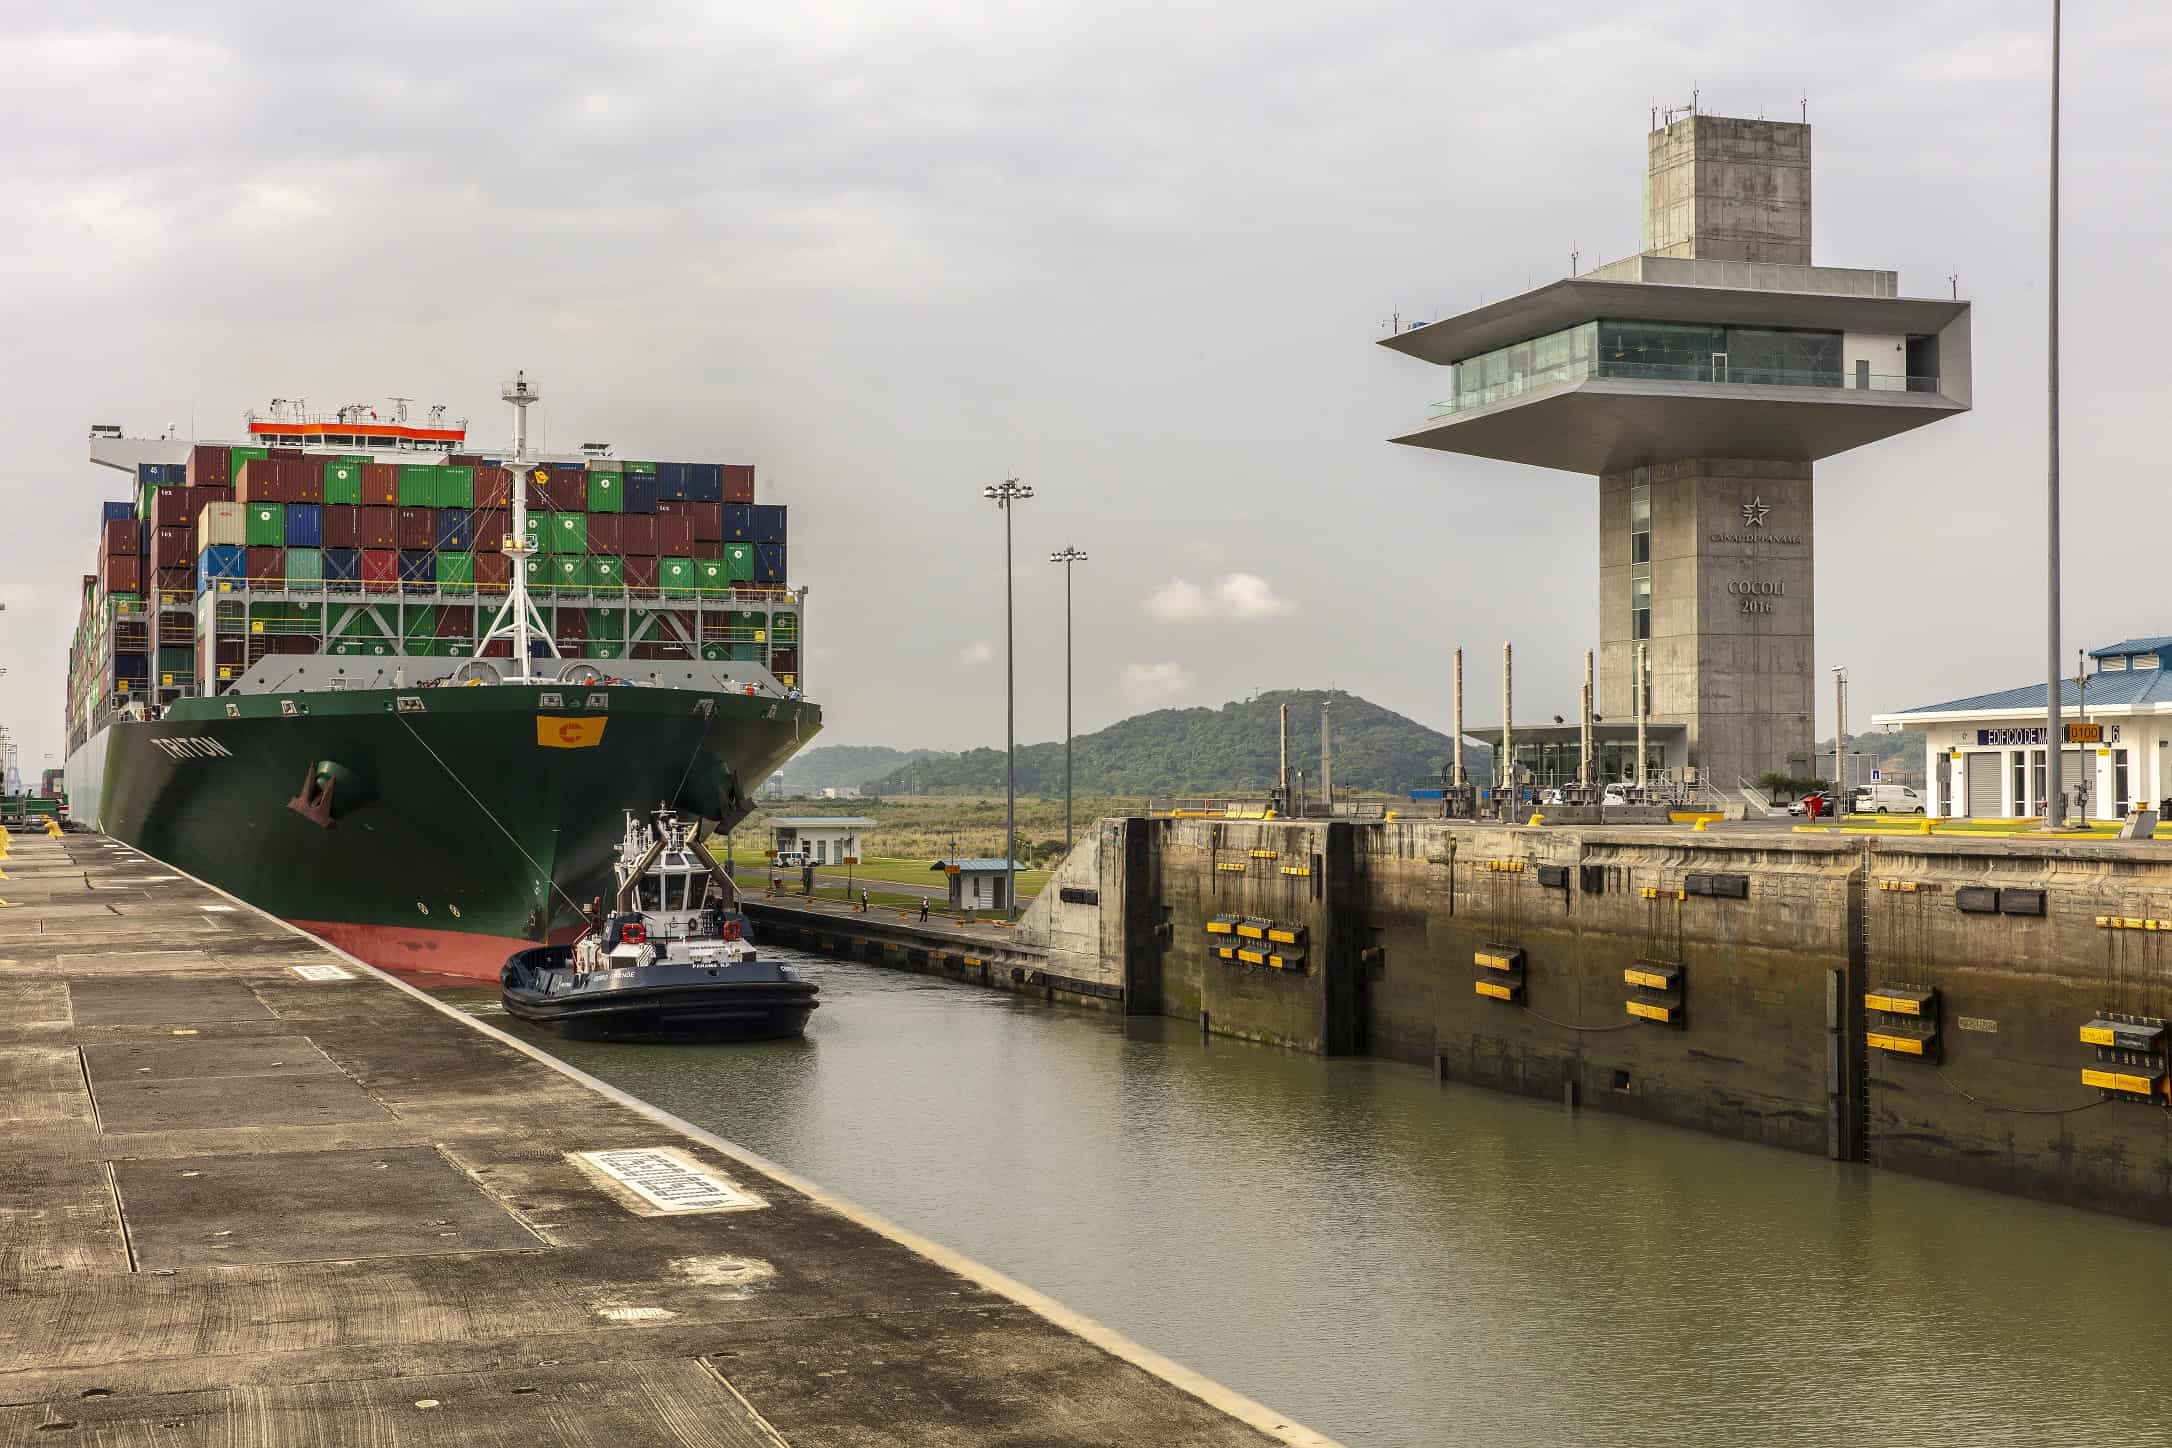 Panama Canal receives largest container ship to date